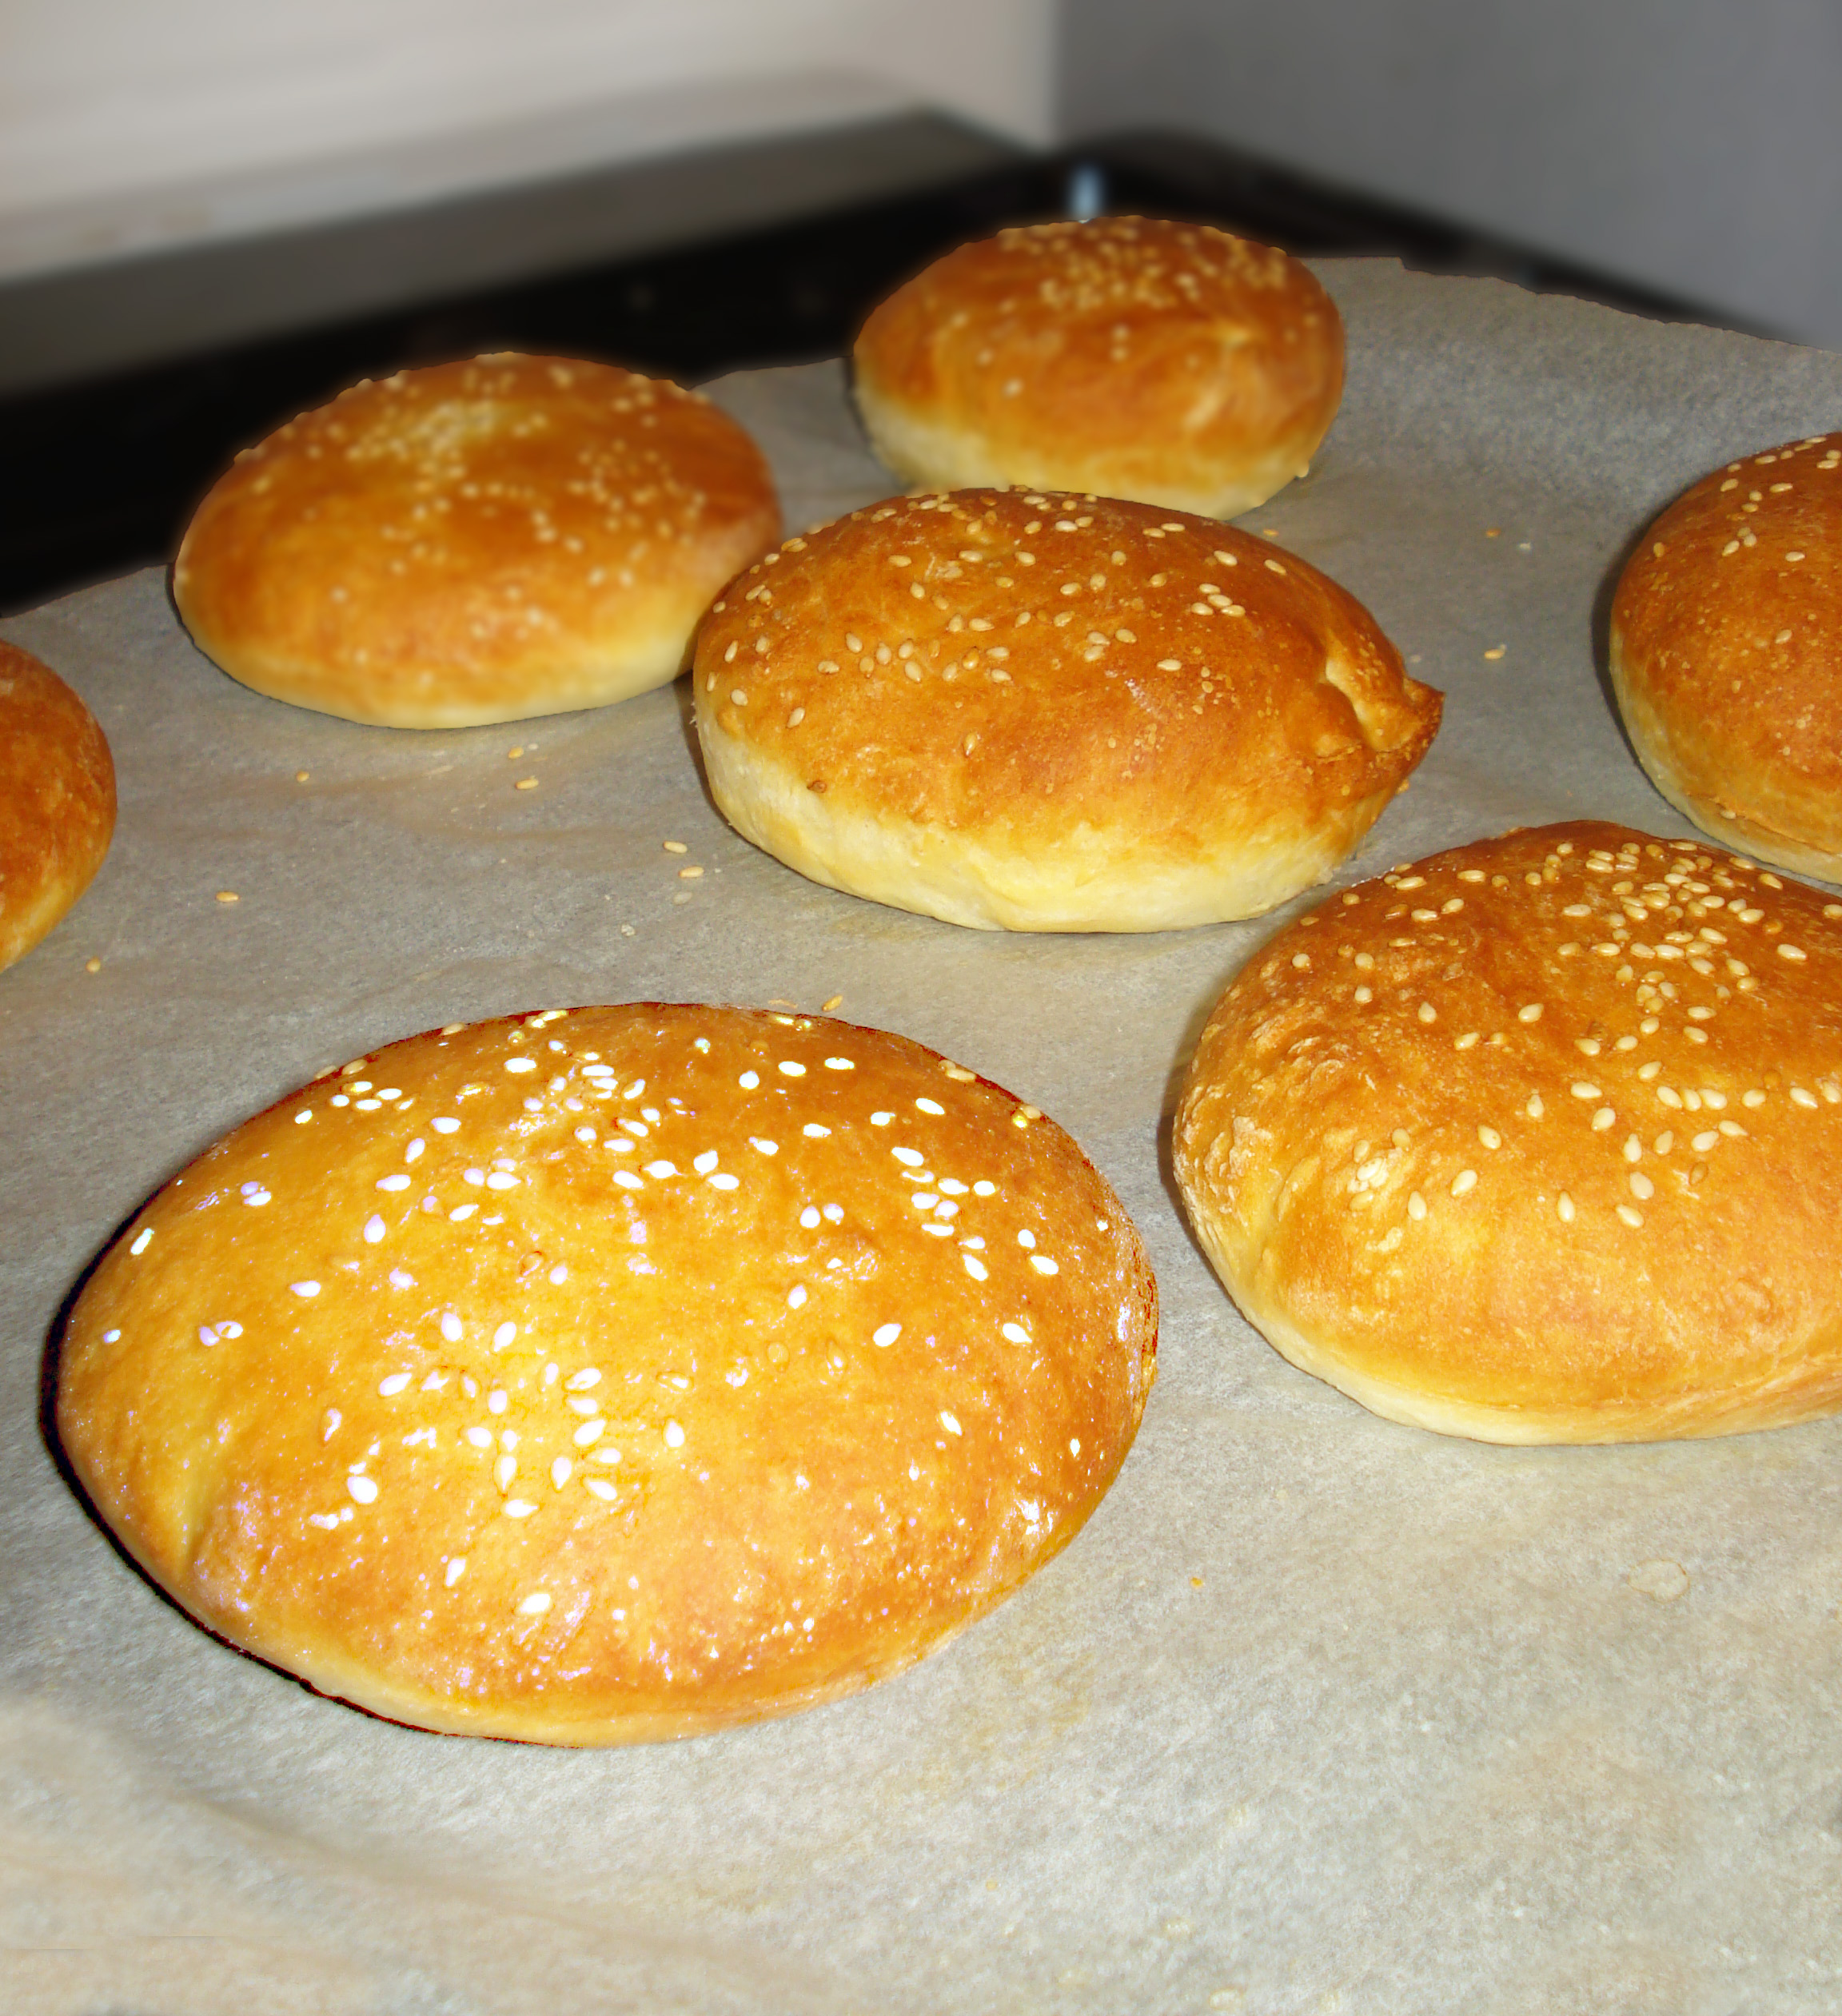 Pains à hamburger ou buns